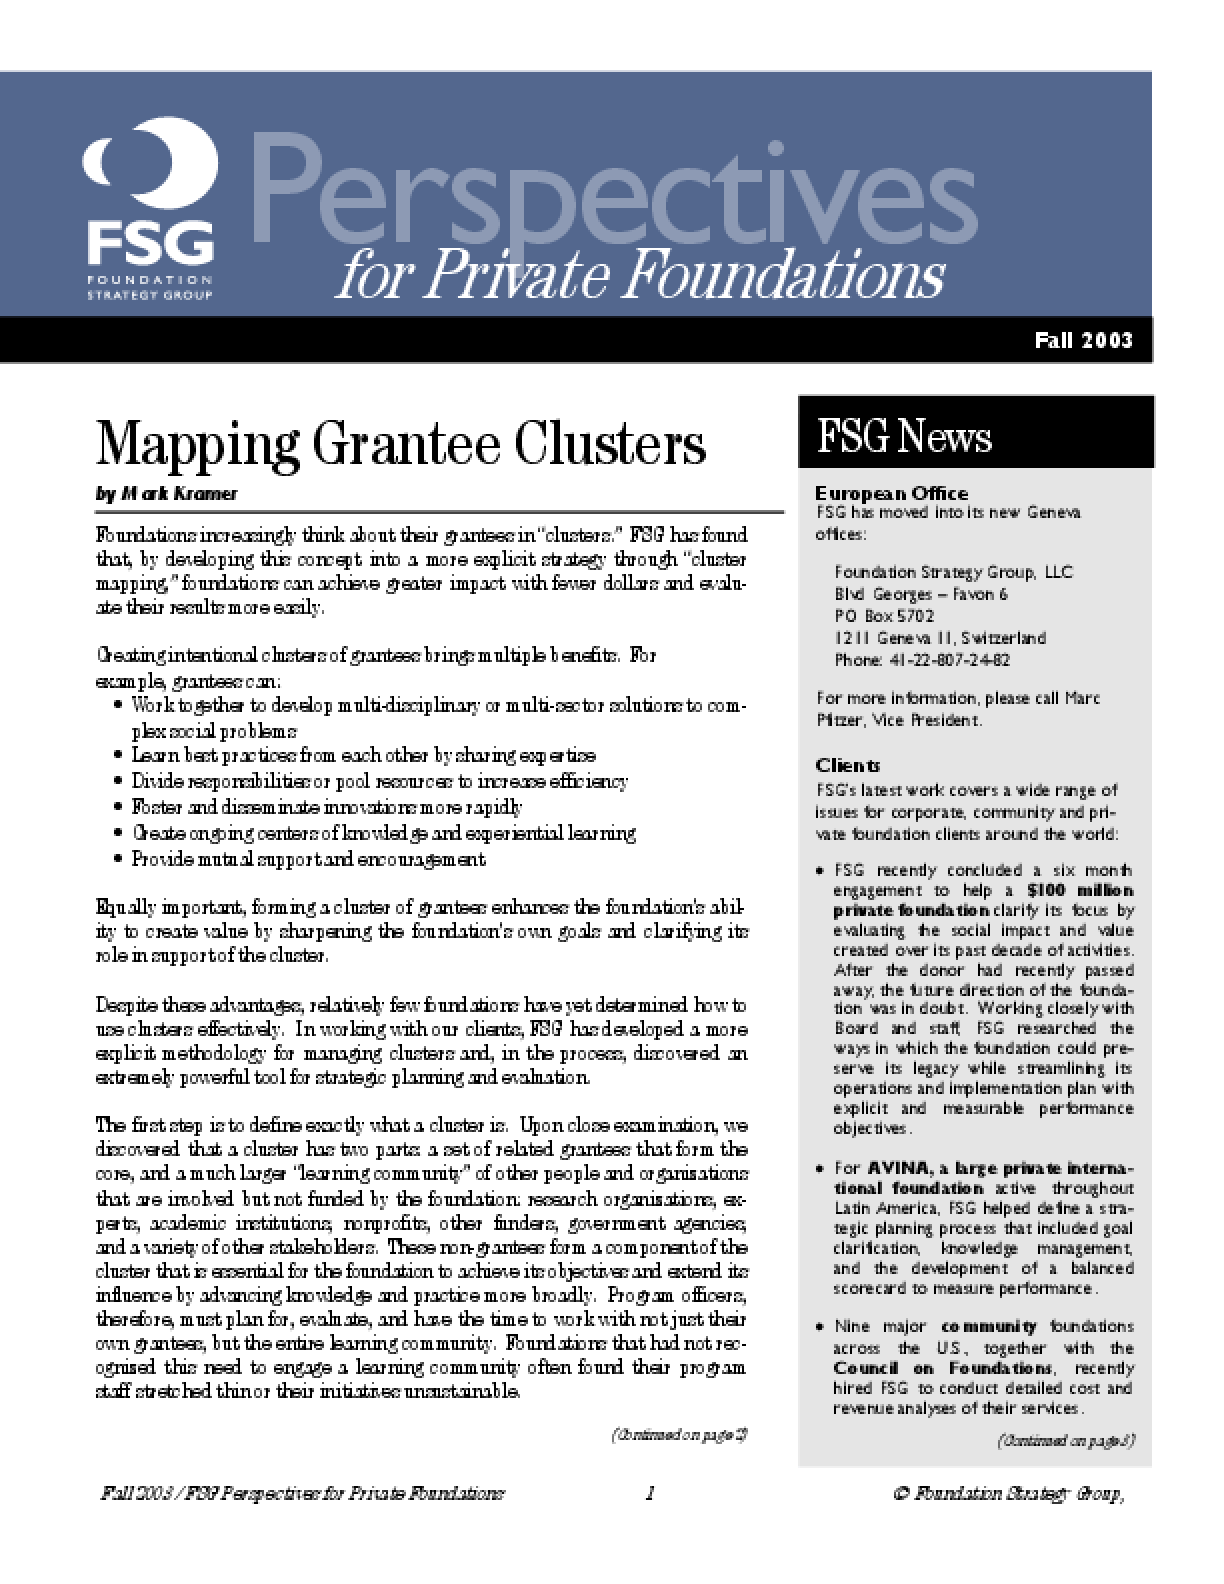 Mapping Grantee Clusters